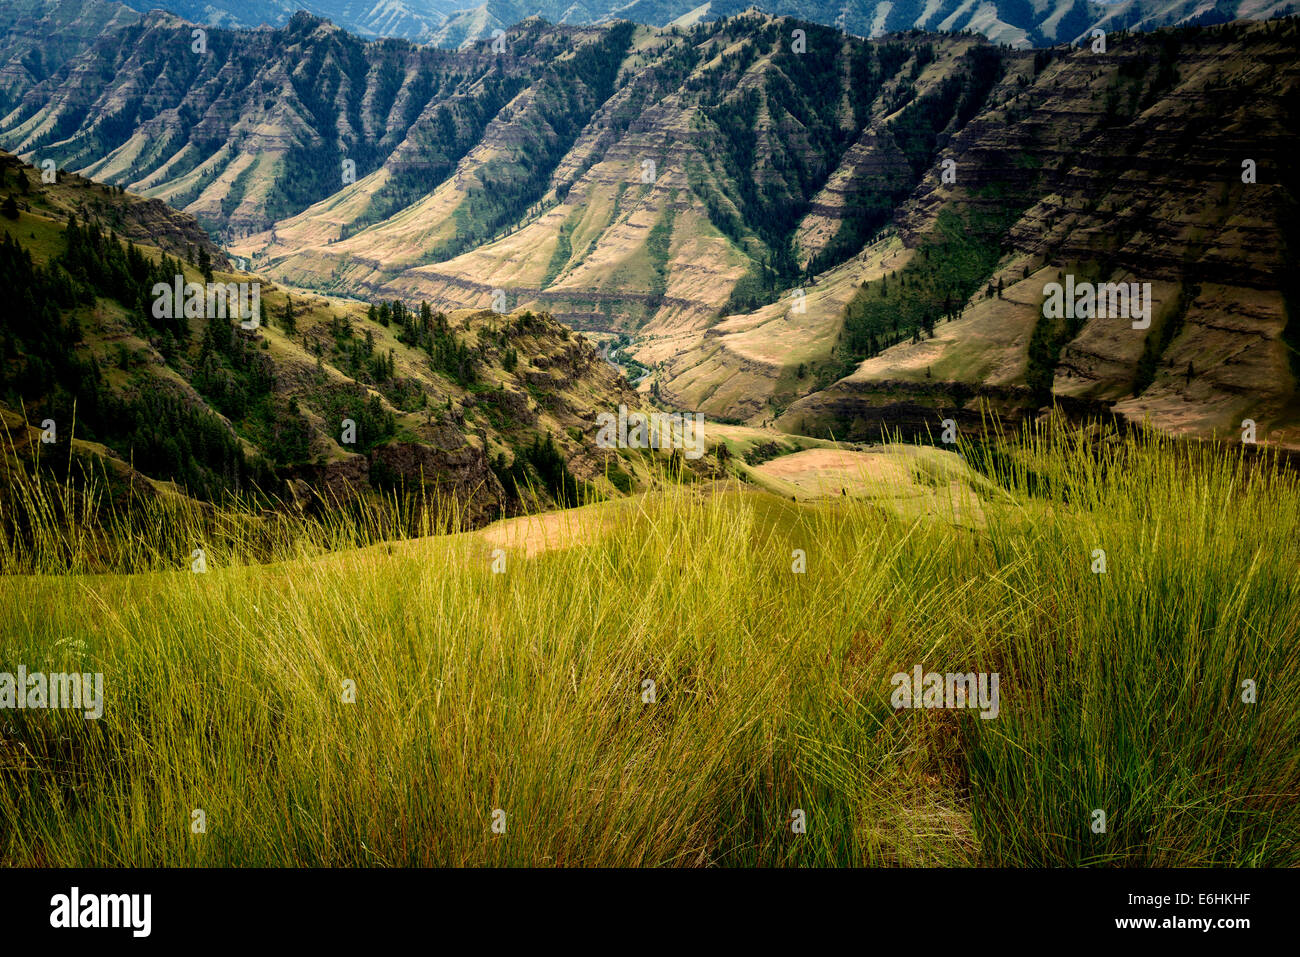 Gräser und Imnaha Canyon. Hells Canyon National Recreation Area, Oregon Stockbild